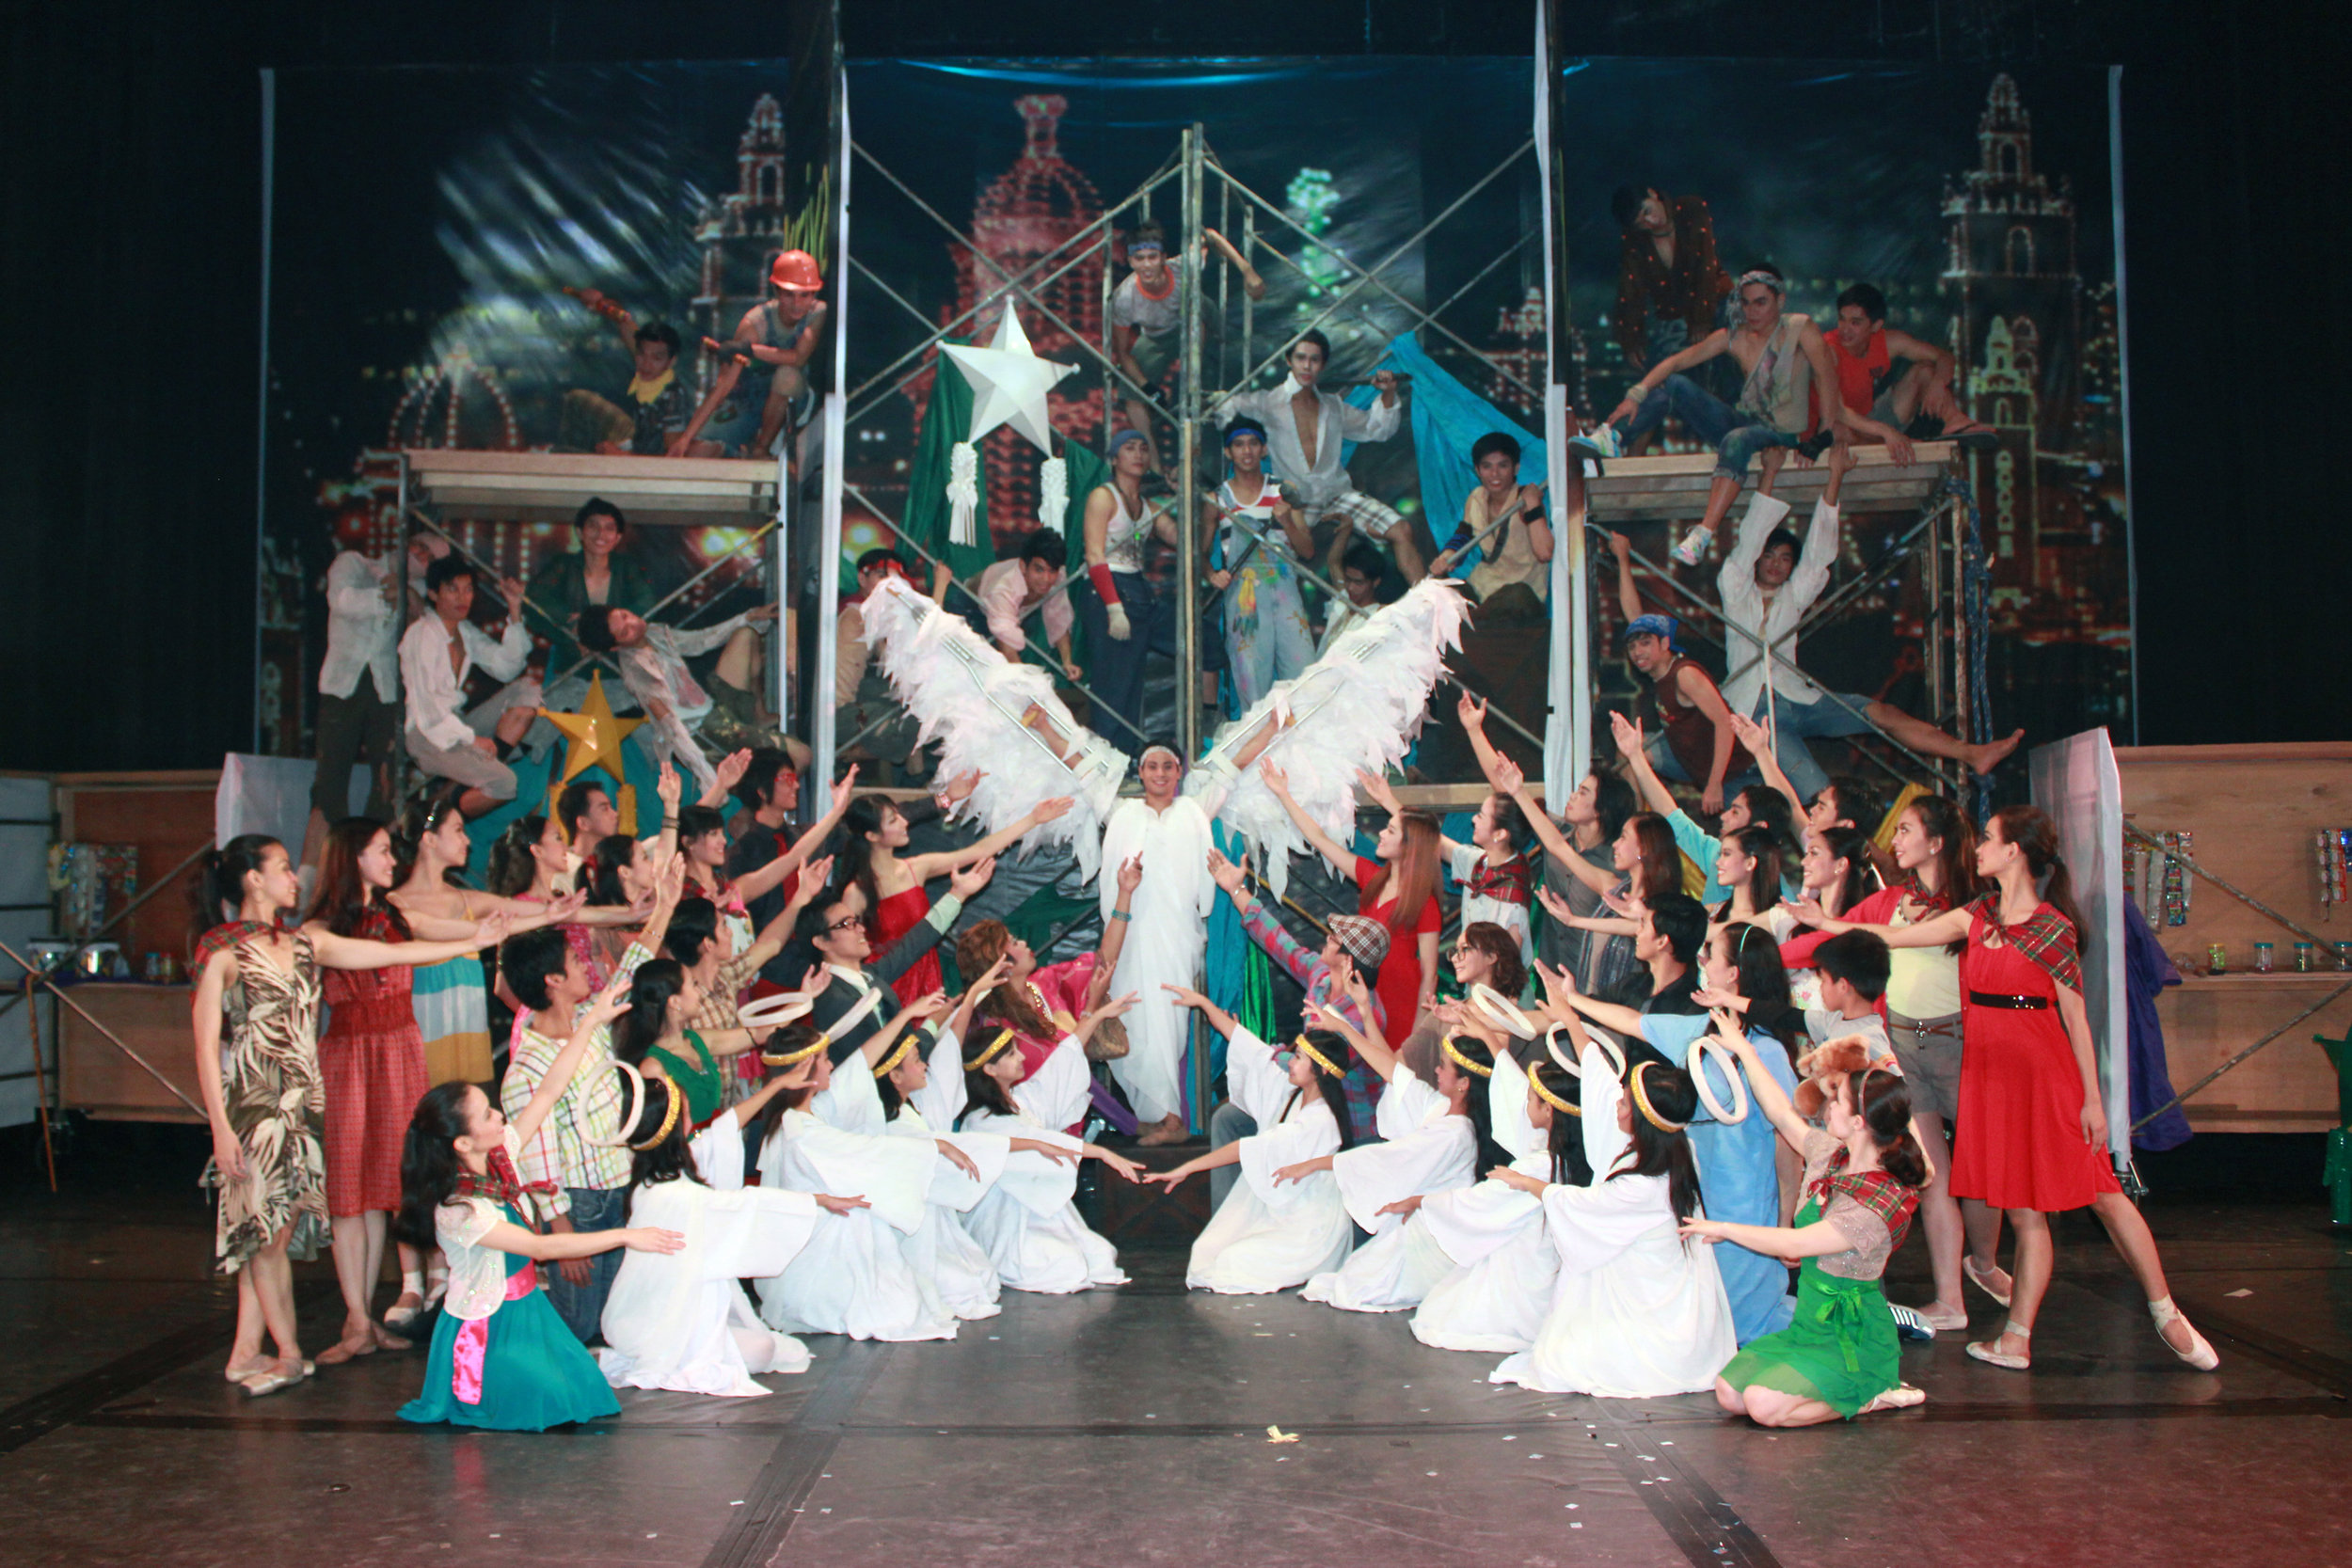 Kutitap , about an angel who falls to earth and befriends different people, was Ballet Manila's Christmas production at Star City in 2016.